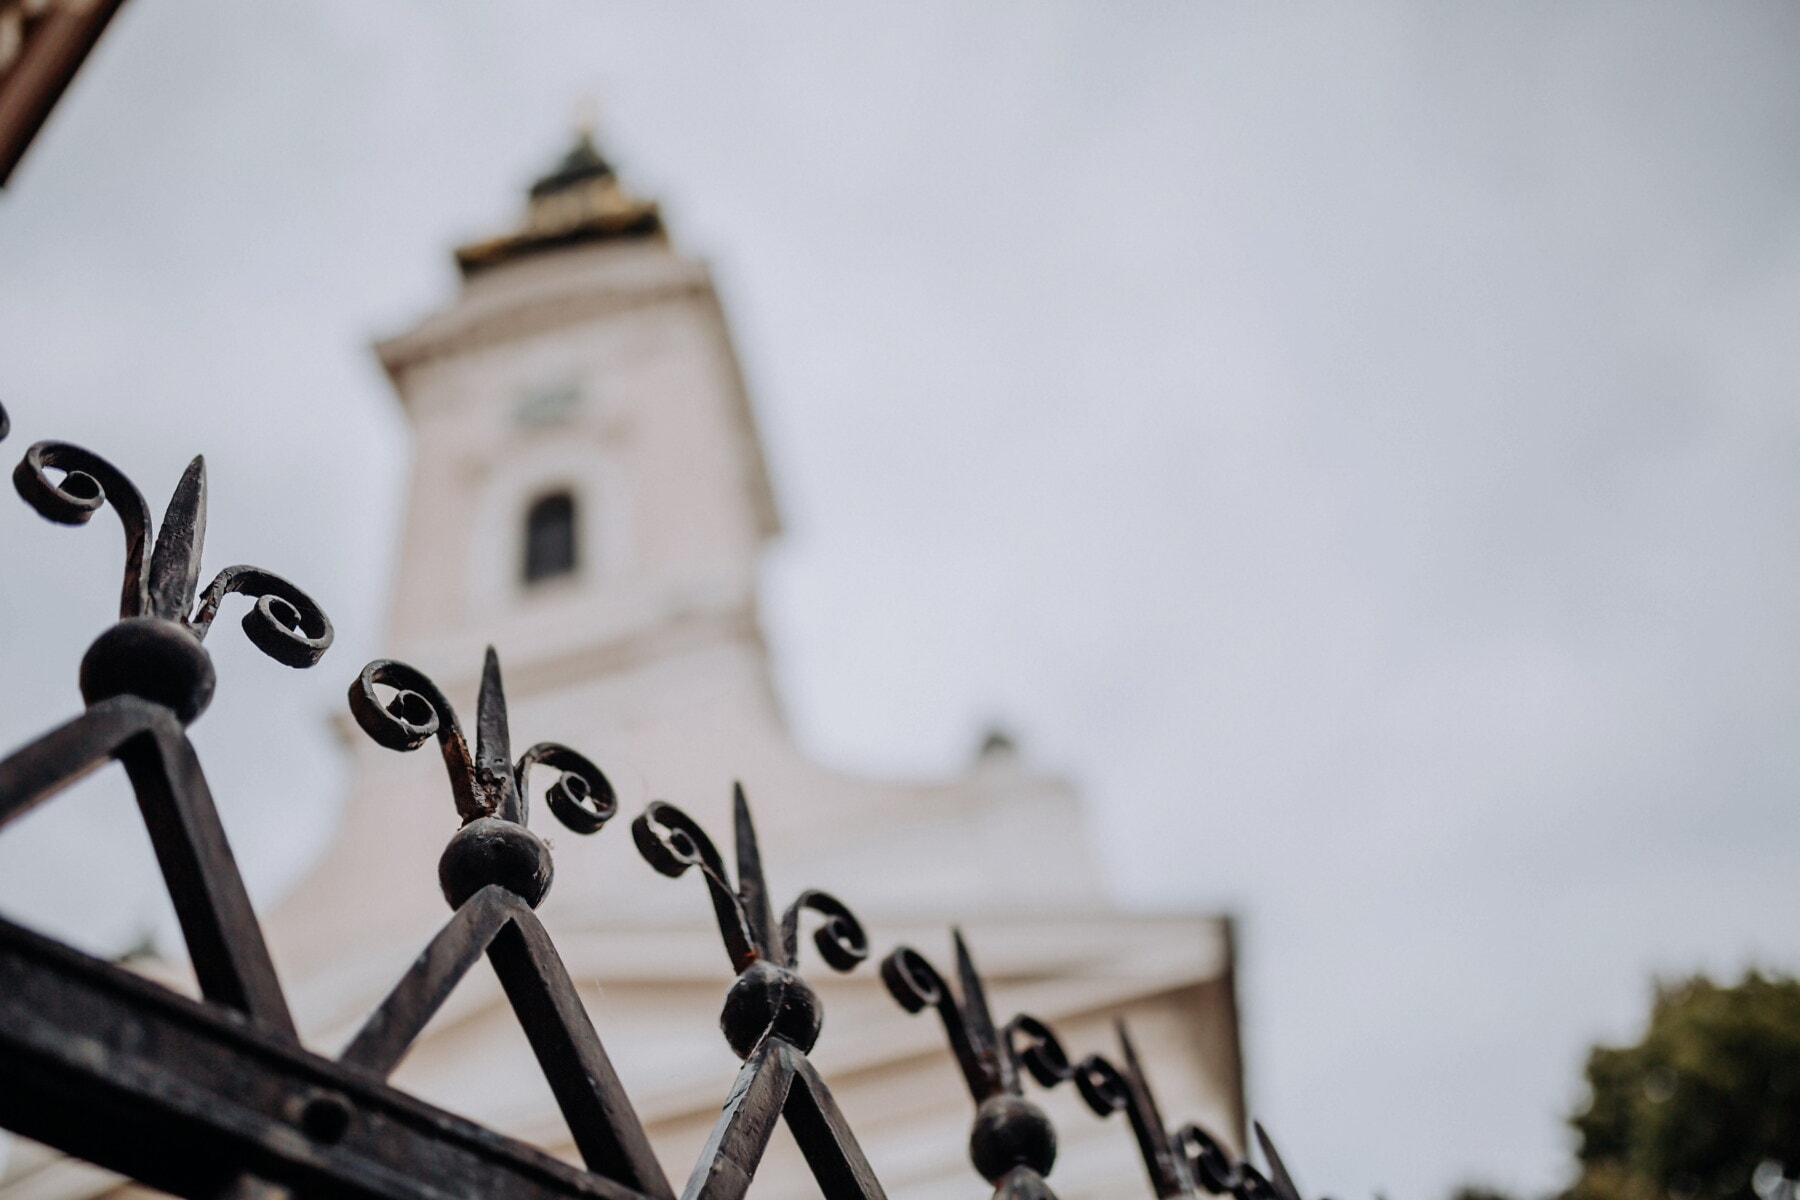 fence, iron, handmade, cast iron, church tower, church, architecture, old, cathedral, traditional